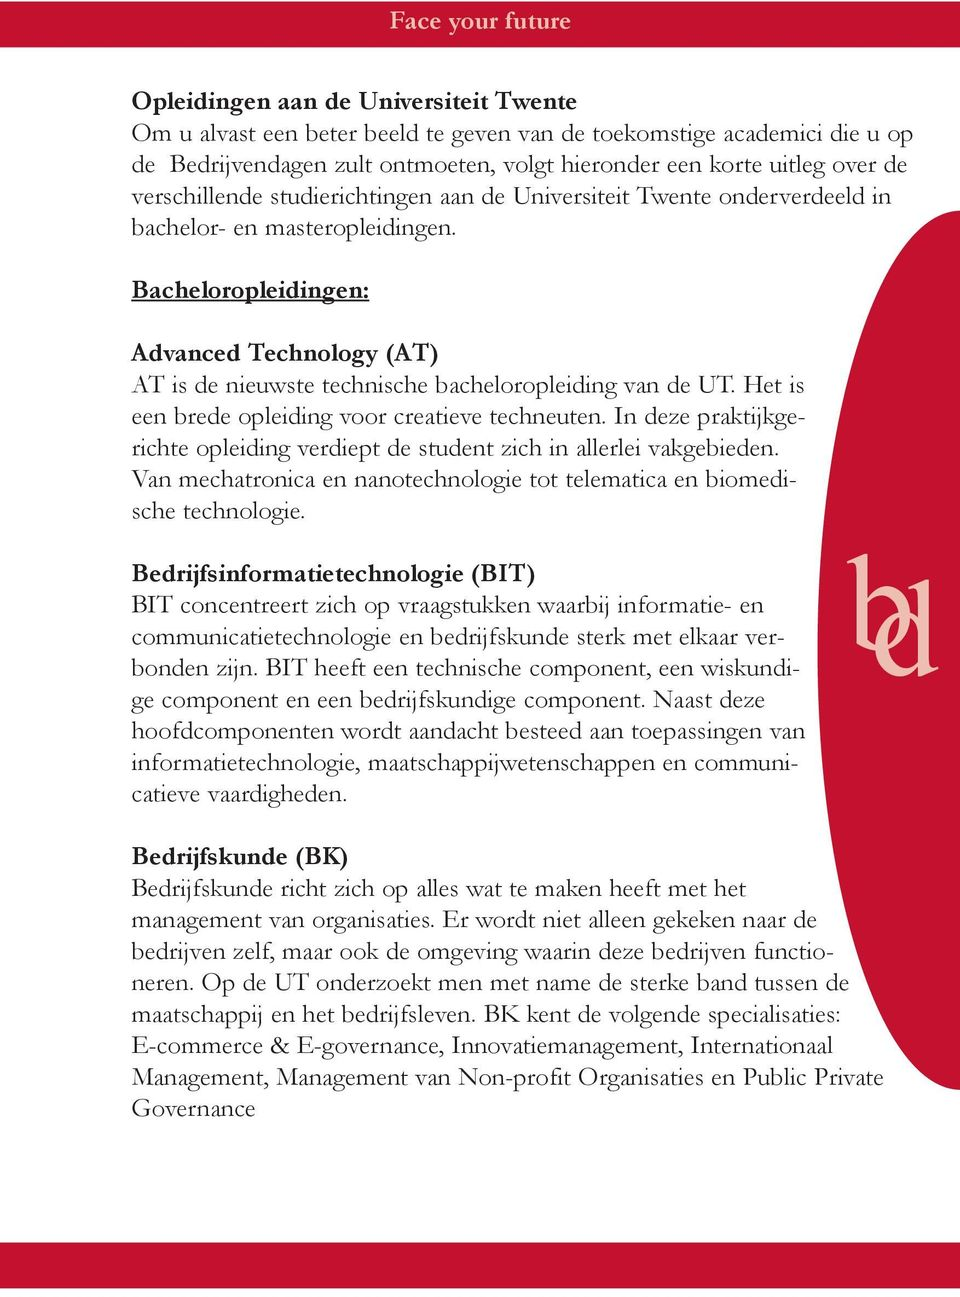 Bacheloropleidingen: Advanced Technology (AT) AT is de nieuwste technische bacheloropleiding van de UT. Het is een brede opleiding voor creatieve techneuten.